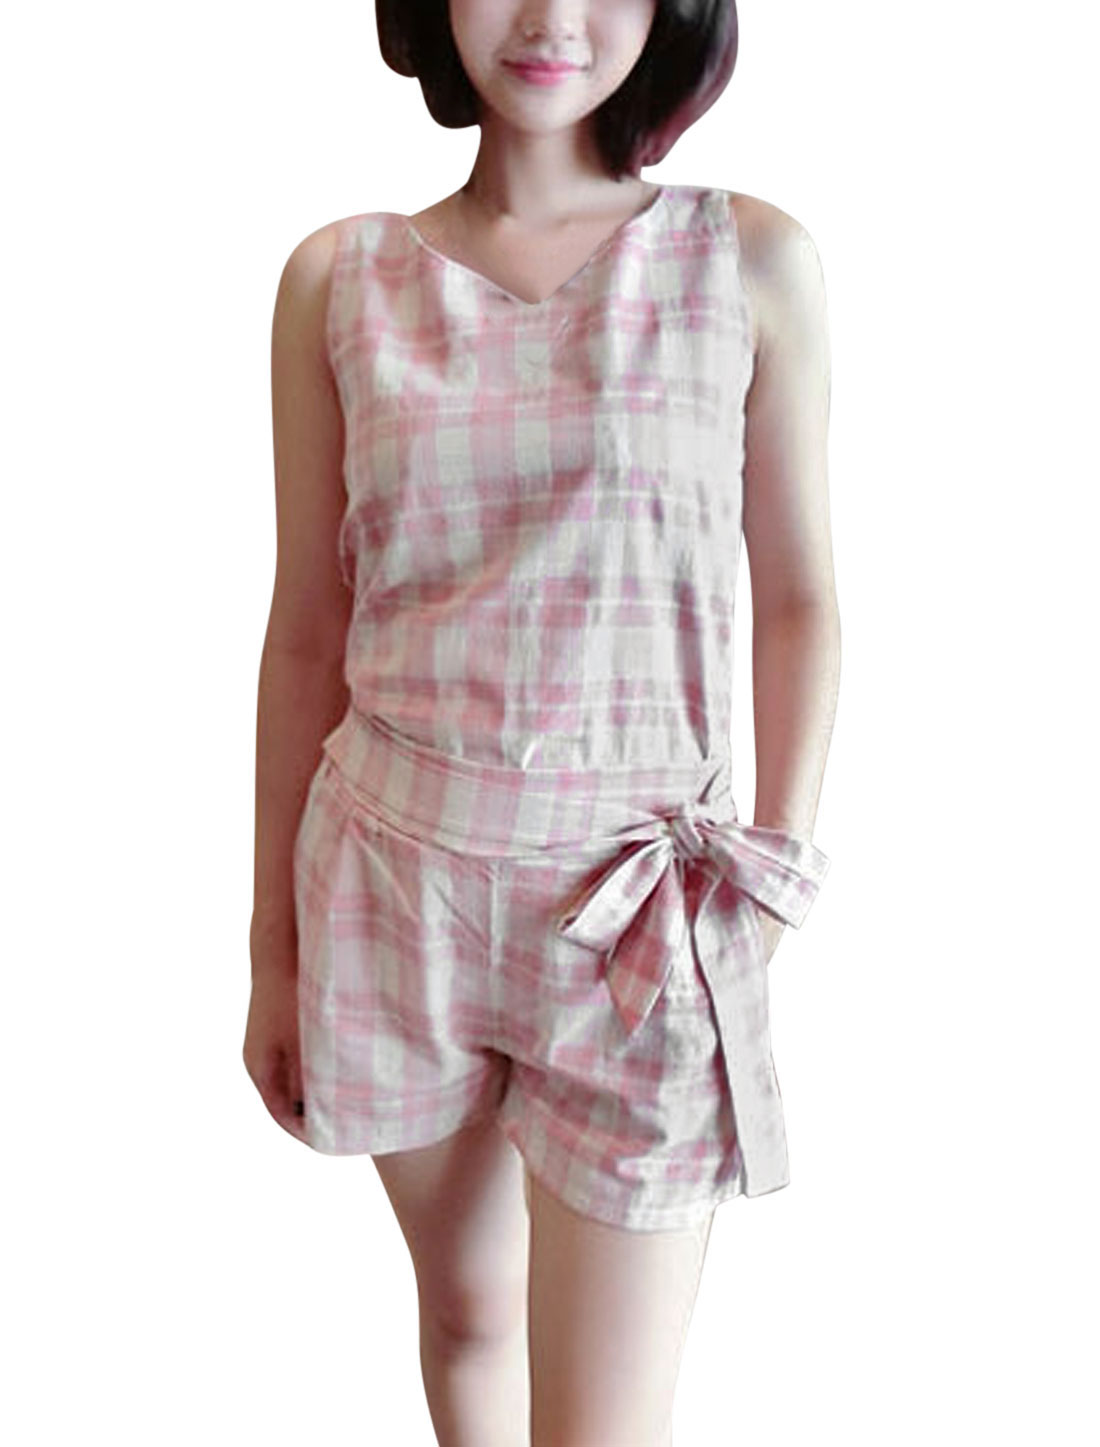 Lady Plaids Pattern Hidden Zipper Back Top w Elastic Waist Shorts Set Pink Beige XS